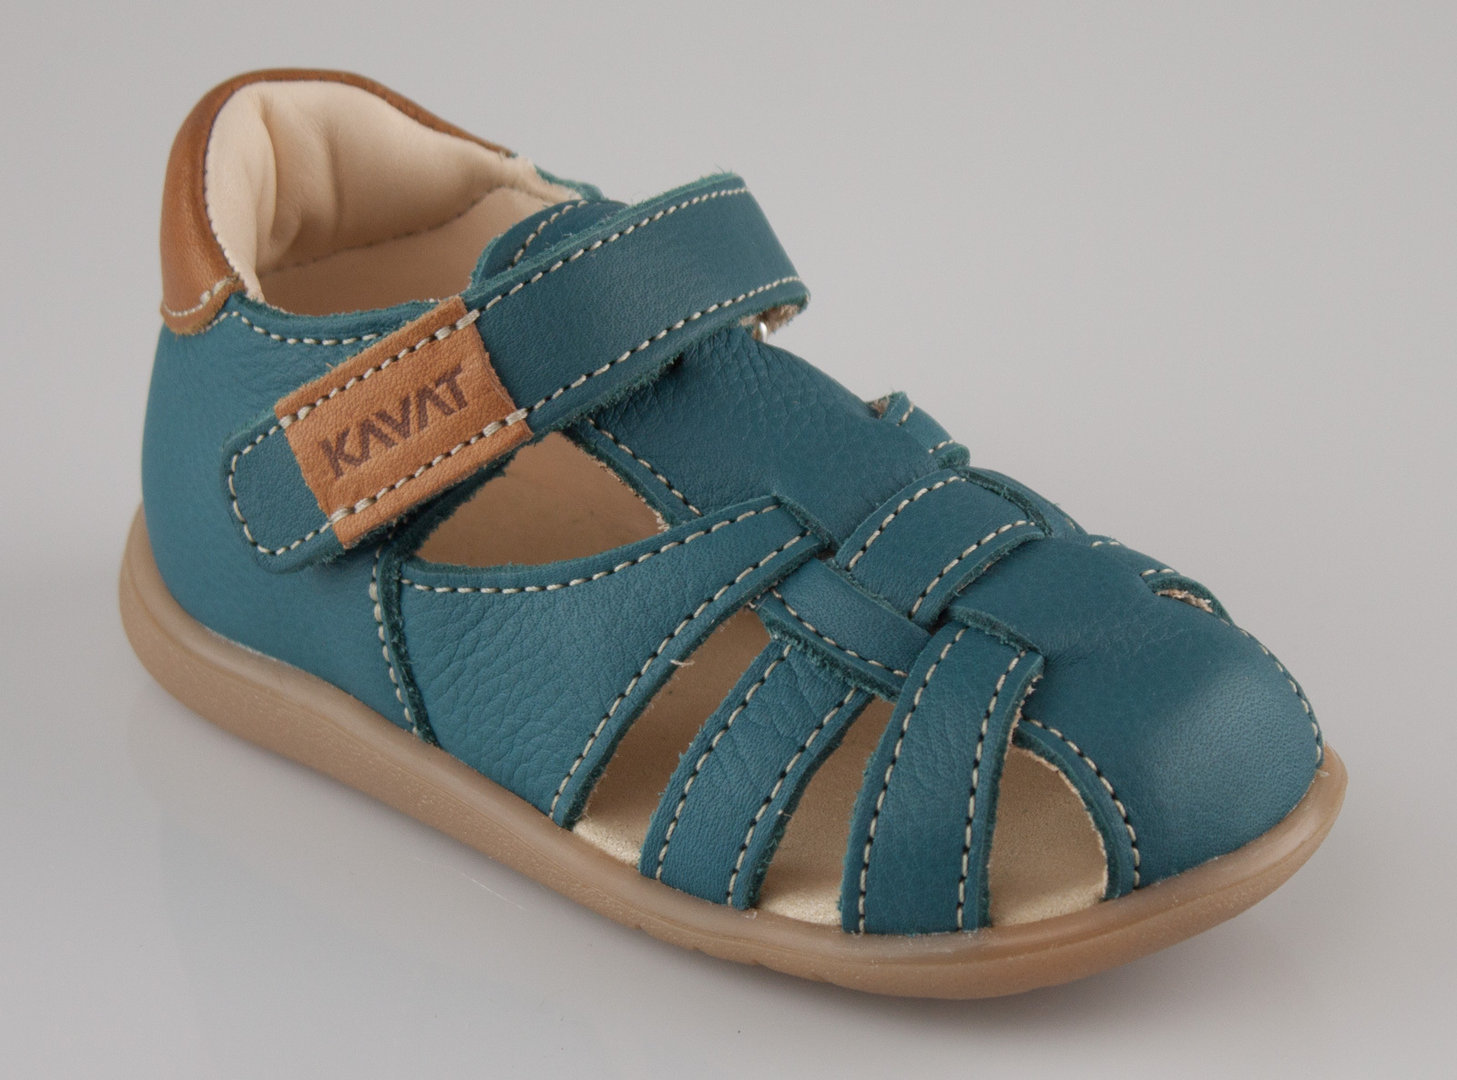 sandals sandals 905 EP RULLSAND ocean 1331271 protection toe toe toe Kavat blue xXUSwqY